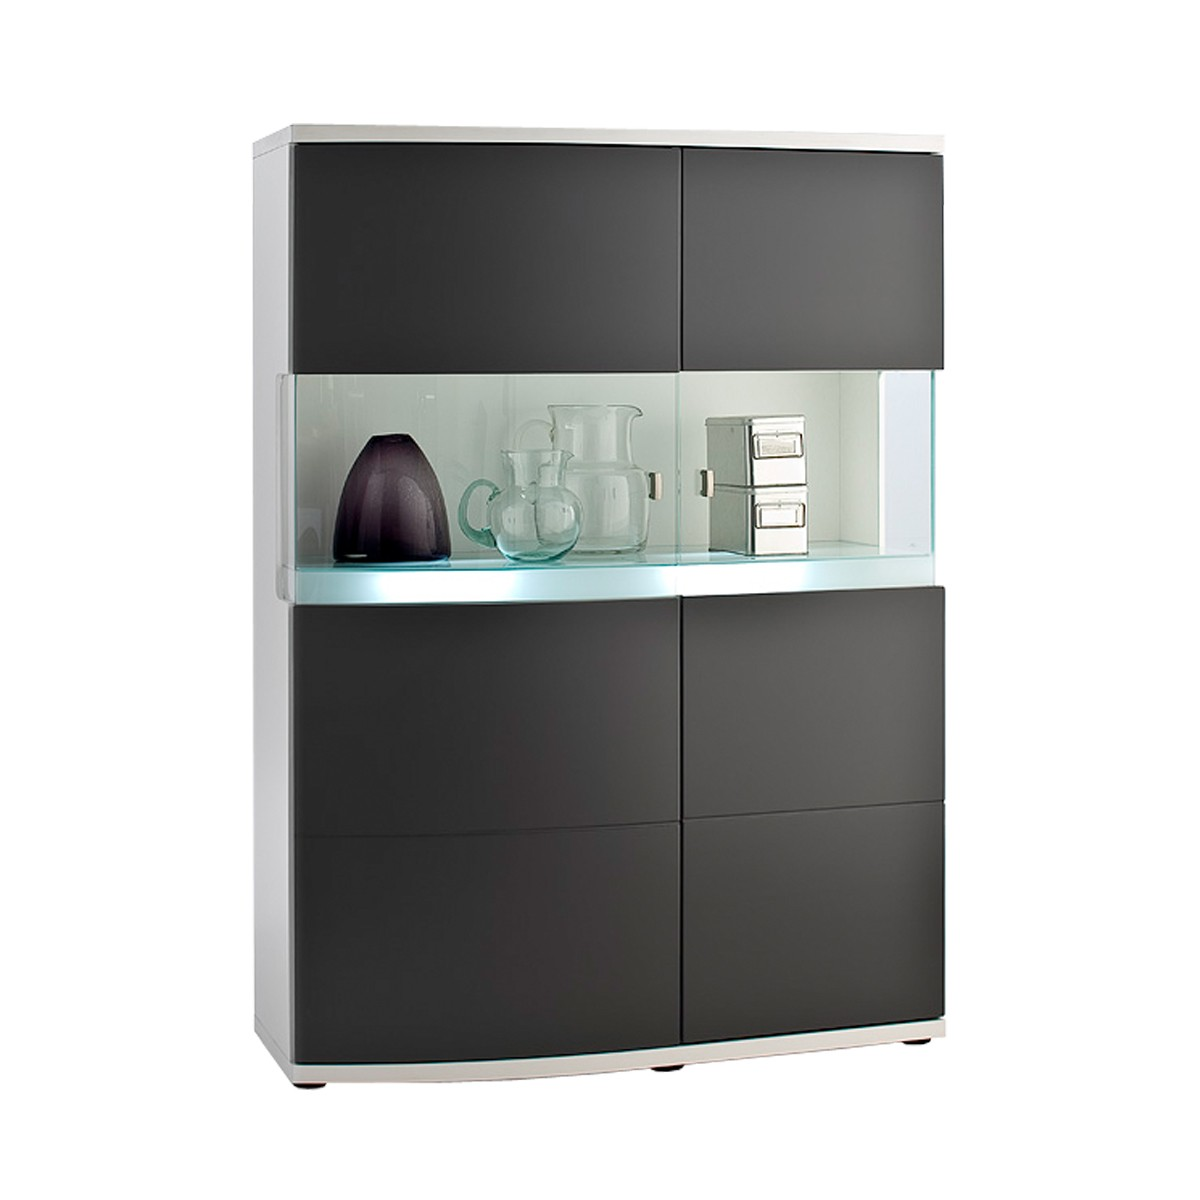 highboard kommode vitrine stauraumelement in weiss und anthrazit ebay. Black Bedroom Furniture Sets. Home Design Ideas